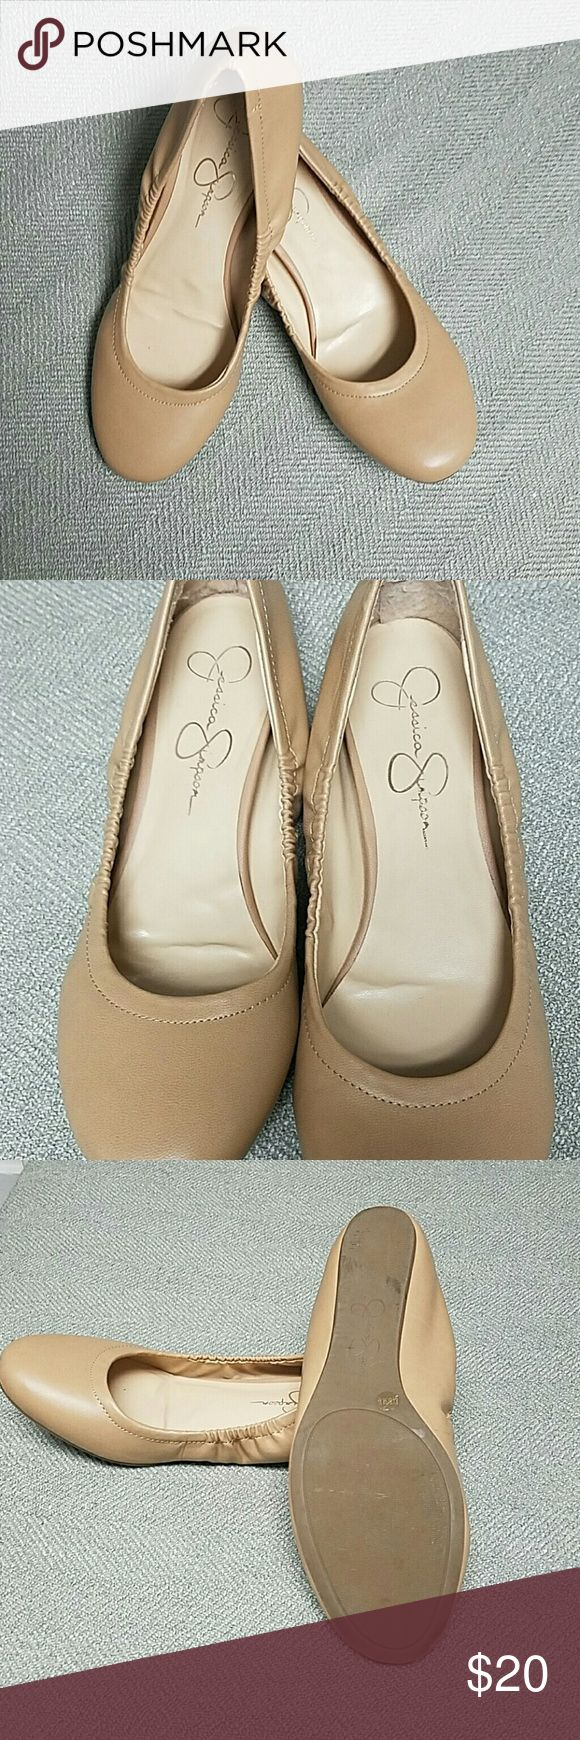 Jessica Simpson Ballet Flats Jessica Simpson Flats size 8.5, tan color, leather exterior, excellent condition with signs of wear where the heel rubs against the back of the shoe. Please message me if you have any questions! Jessica Simpson Shoes Flats & Loafers